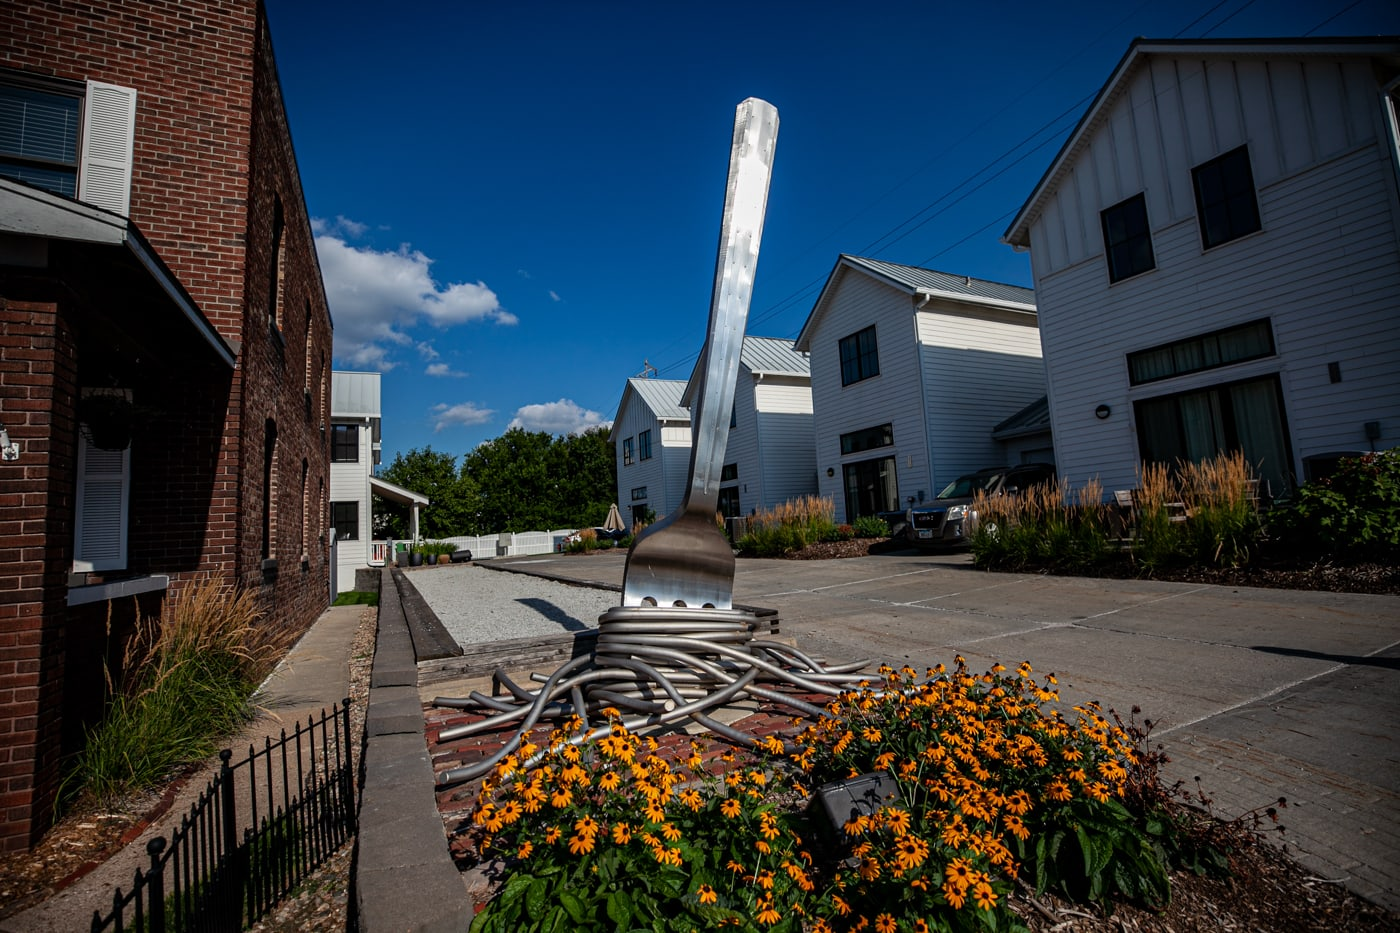 Stile di Famiglia - Family Style Giant Fork with Spaghetti in Omaha, Nebraska - Public Art in Omaha at the Towns of Little Italy - Omaha Roadside Attractions in Nebraska